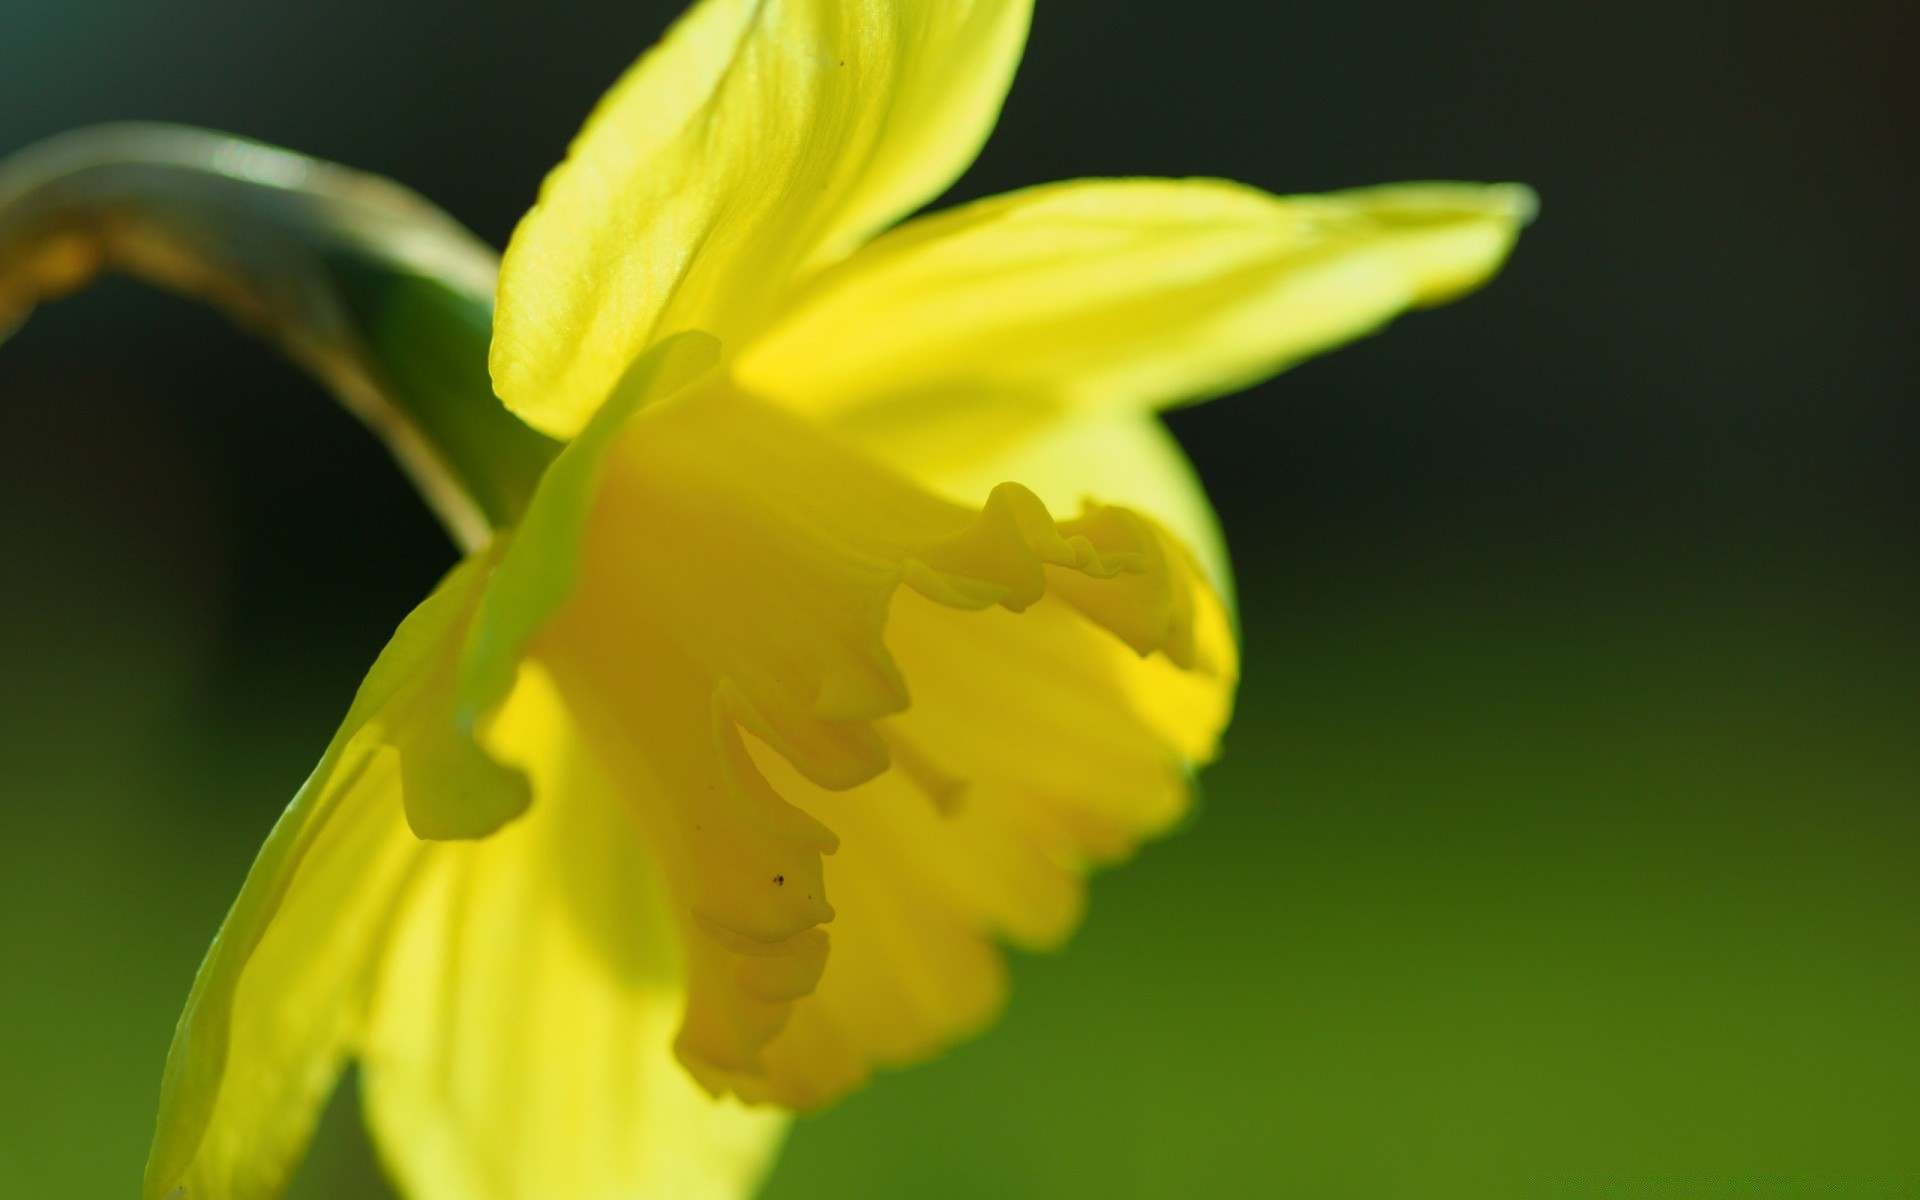 flowers flower nature flora daffodil leaf blur easter growth garden color bright floral narcissus